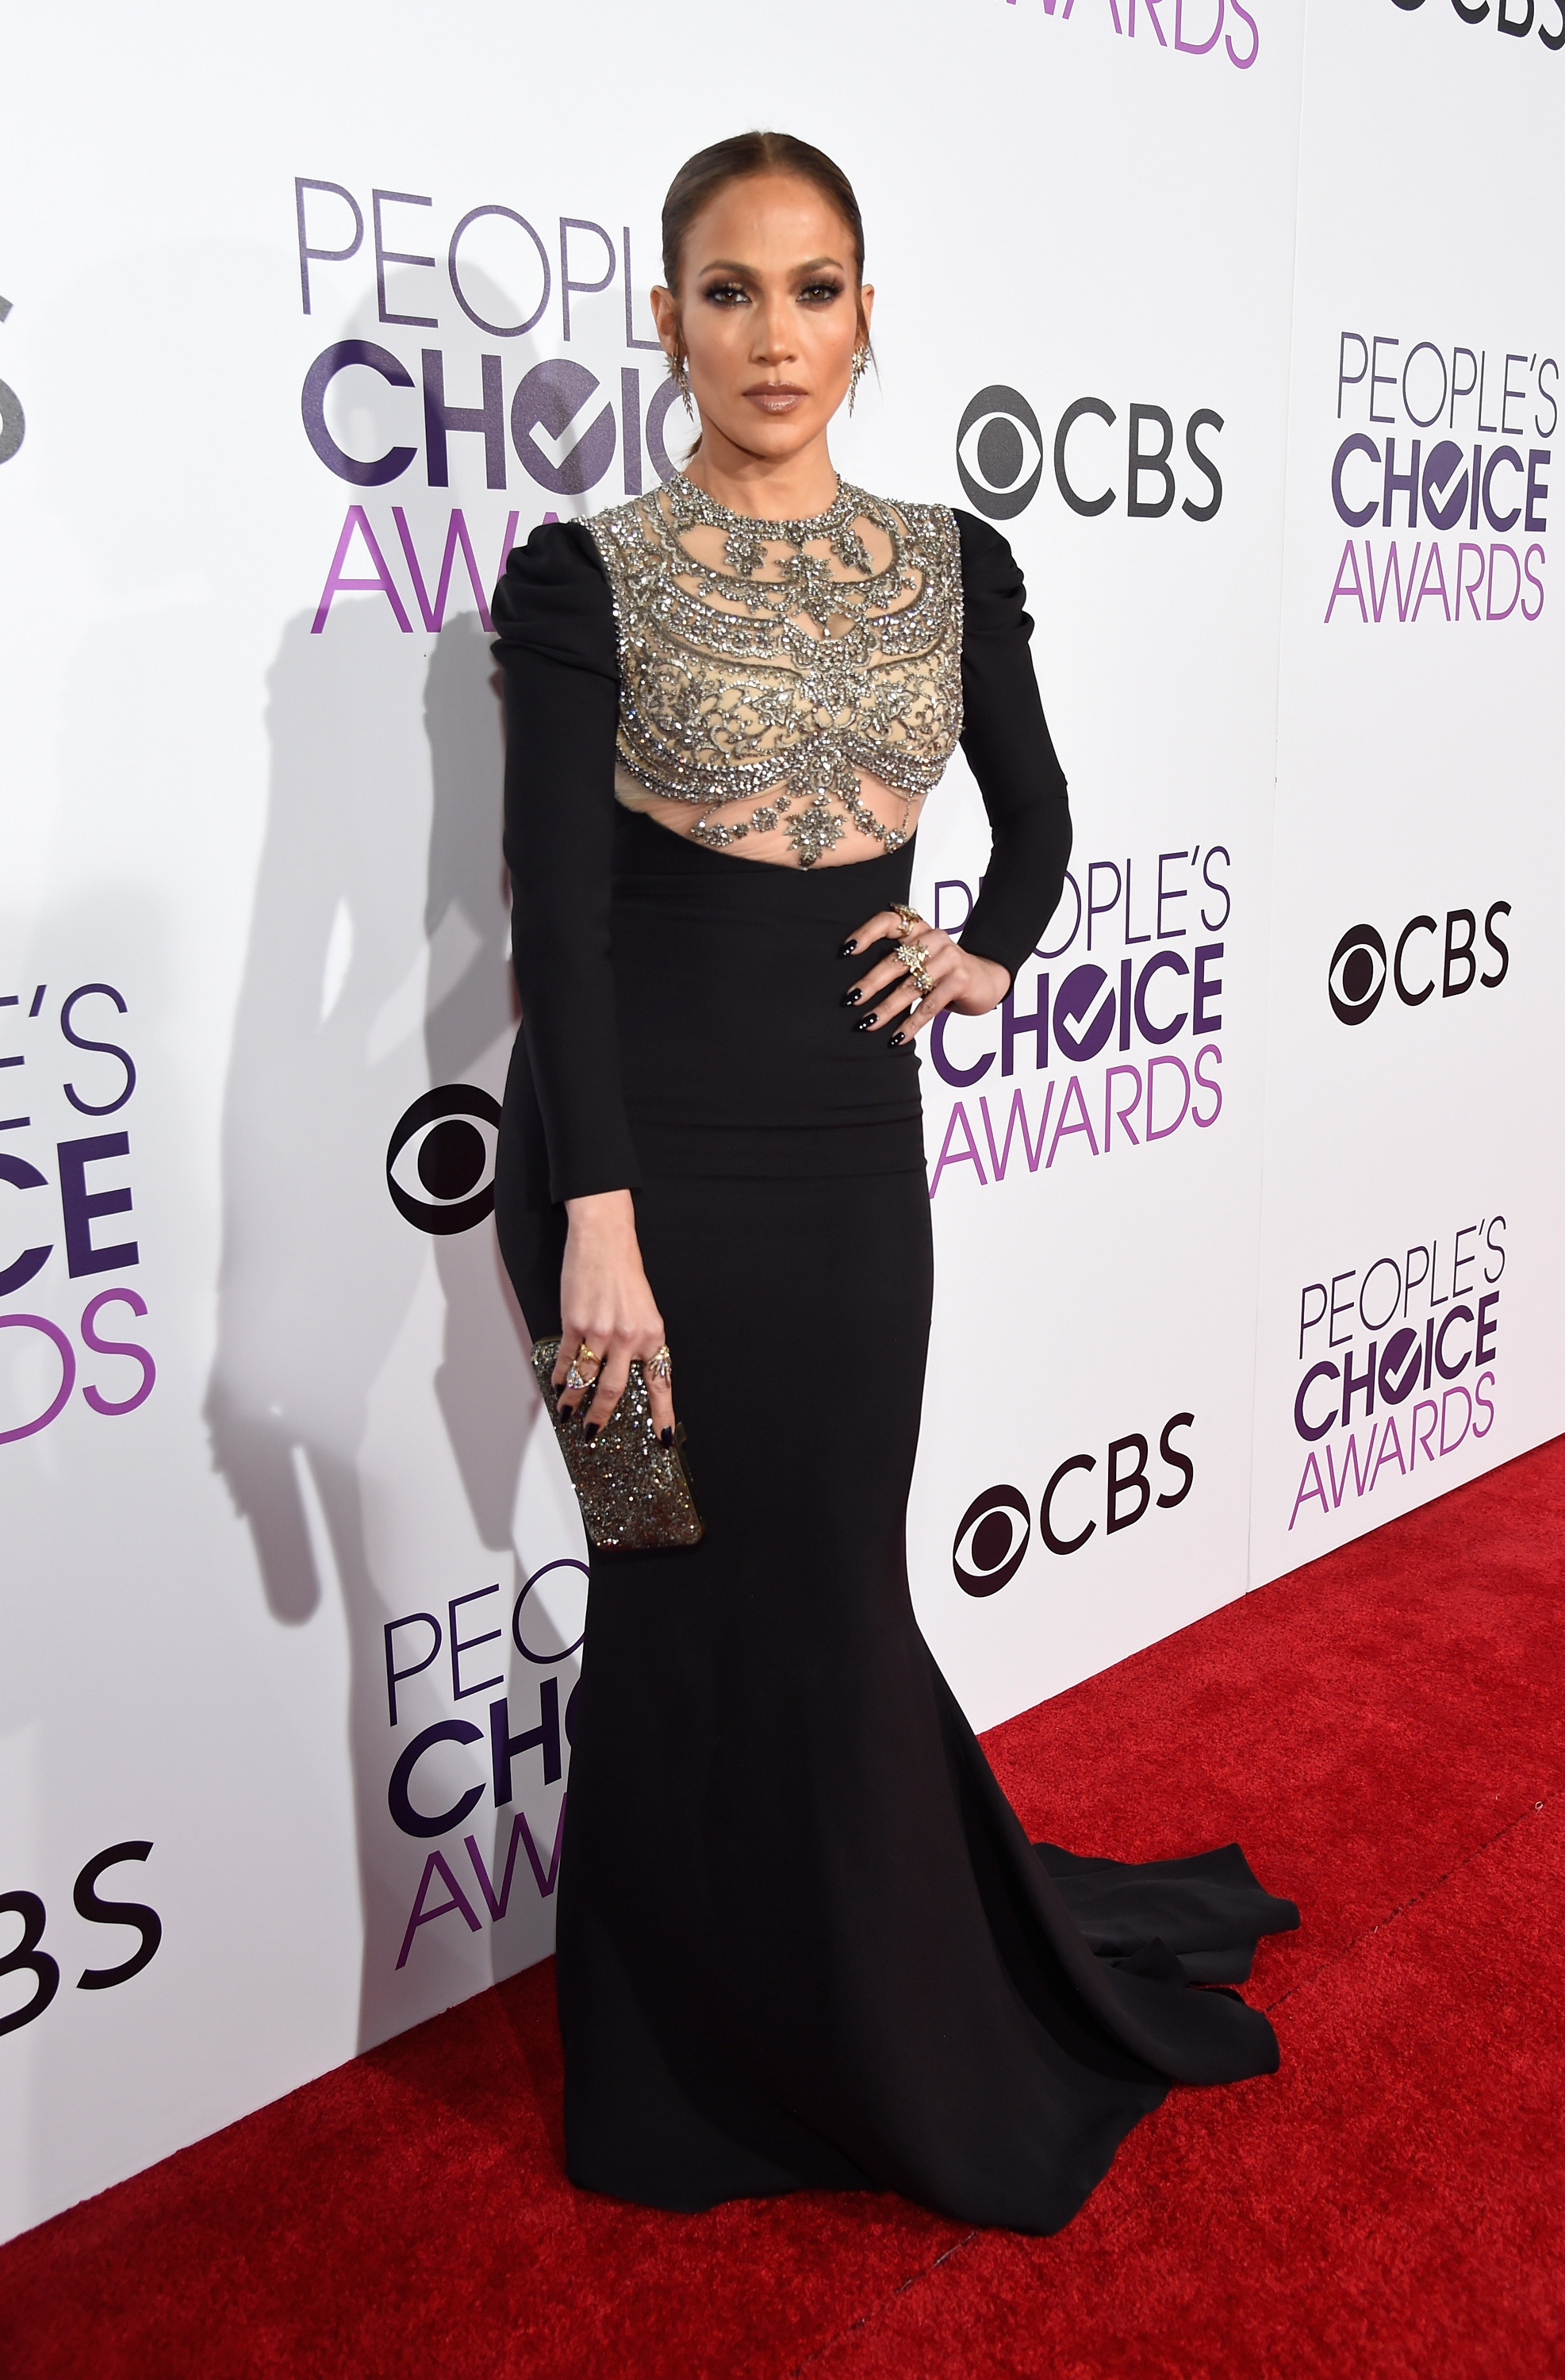 <p>The People's Choice Awards, the awards where we get to choose the winners, has rolled into town and in a major way.</p> <p>All the A-list stars from the big and small screens and the music world too attended the event sweeping down the red carpet beforehand wearing everything from elaborate formal gowns to fringed minis.</p> <p>The standout of the event was Jennifer Lopez (who was spotted snapping selfies with actor Wilmer Valderrama) who was absolutely breath-taking in a fitted Reem Acra gown with a heavily beaded bodice and jewellery by H.Stern.</p> <p>But J-Lo wasn't the only celebrity who caused the crowd to collectively swoon. Click through for pictures of the stars who won the day – and those who didn't quite there.</p> <p>Image: Getty.</p>